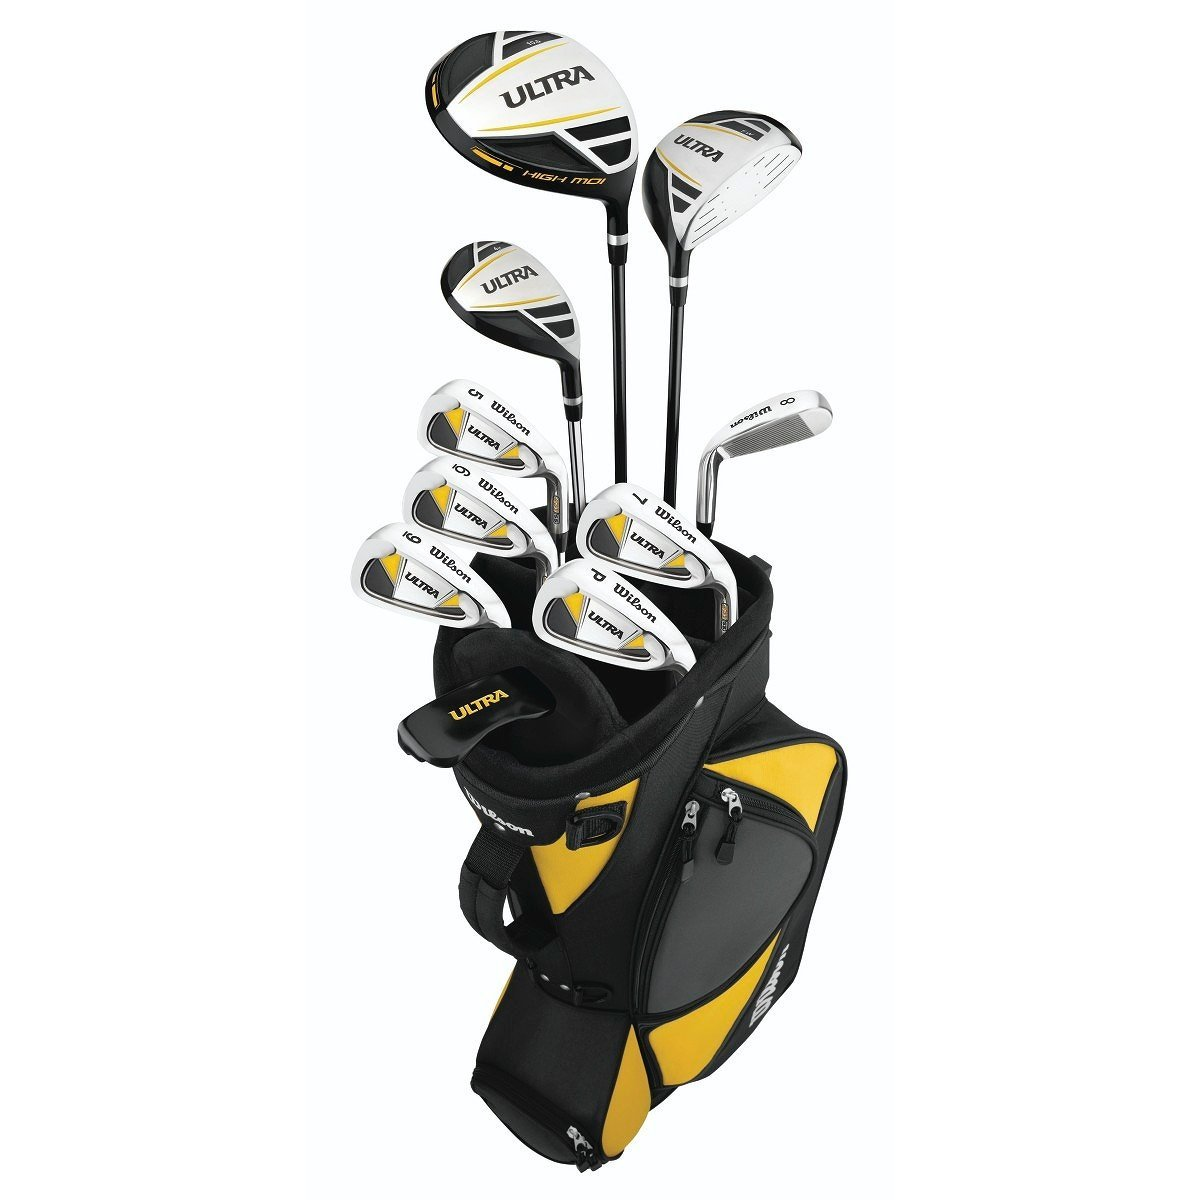 What are the Best Beginner Golf Clubs?